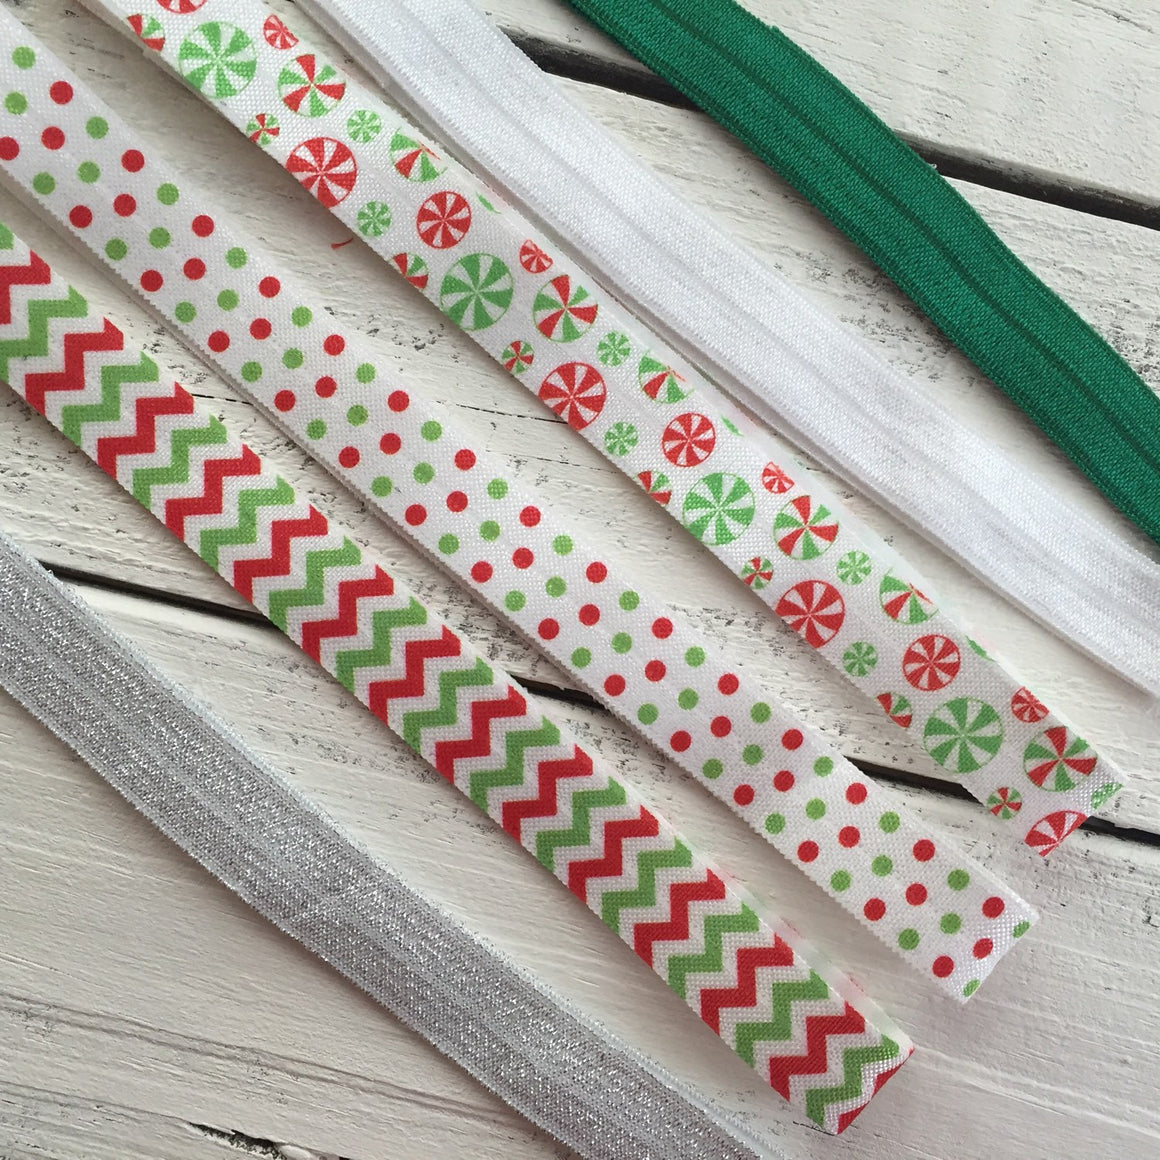 Christmas Headband - Shabby Flower - Sequin Bow - Chevron, Polka Dot, Candy Cane